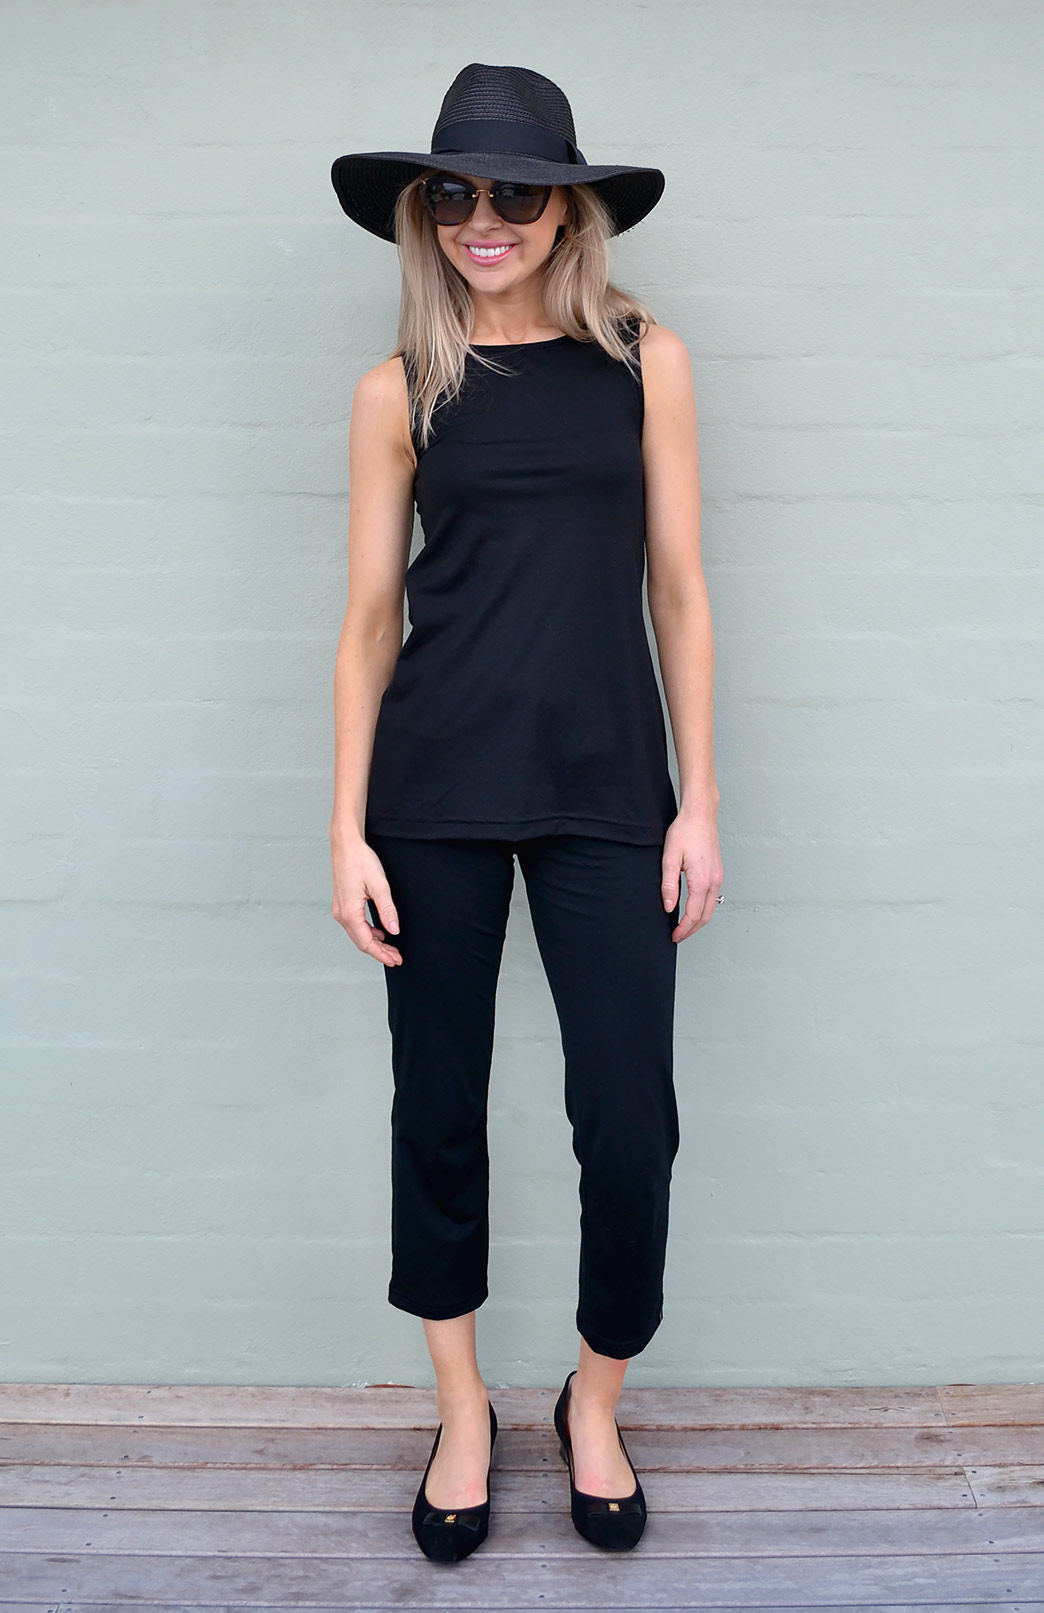 Capri Pants - Lightweight - Women's Black Merino Wool Lightweight 7/8th Crop Pants - Smitten Merino Tasmania Australia